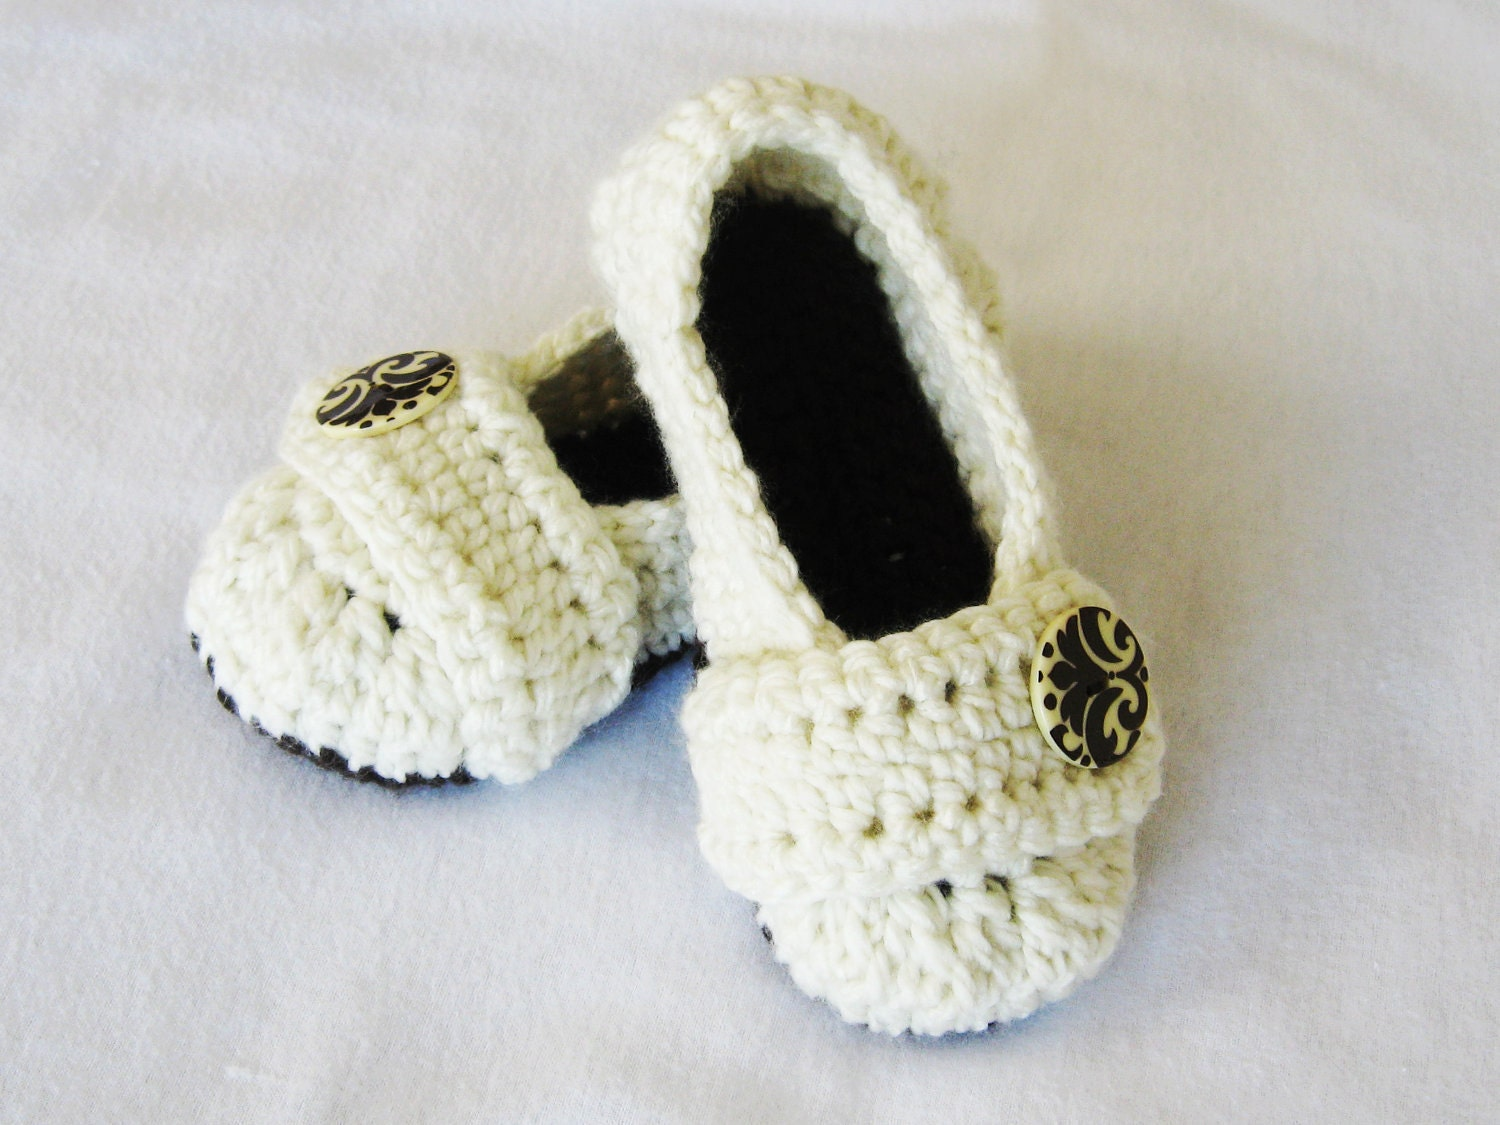 CROCHET PATTERN Cozy Women's House Slippers (5 sizes included: Womens 3-12) permission to sell finished items - YarnBlossomBoutique